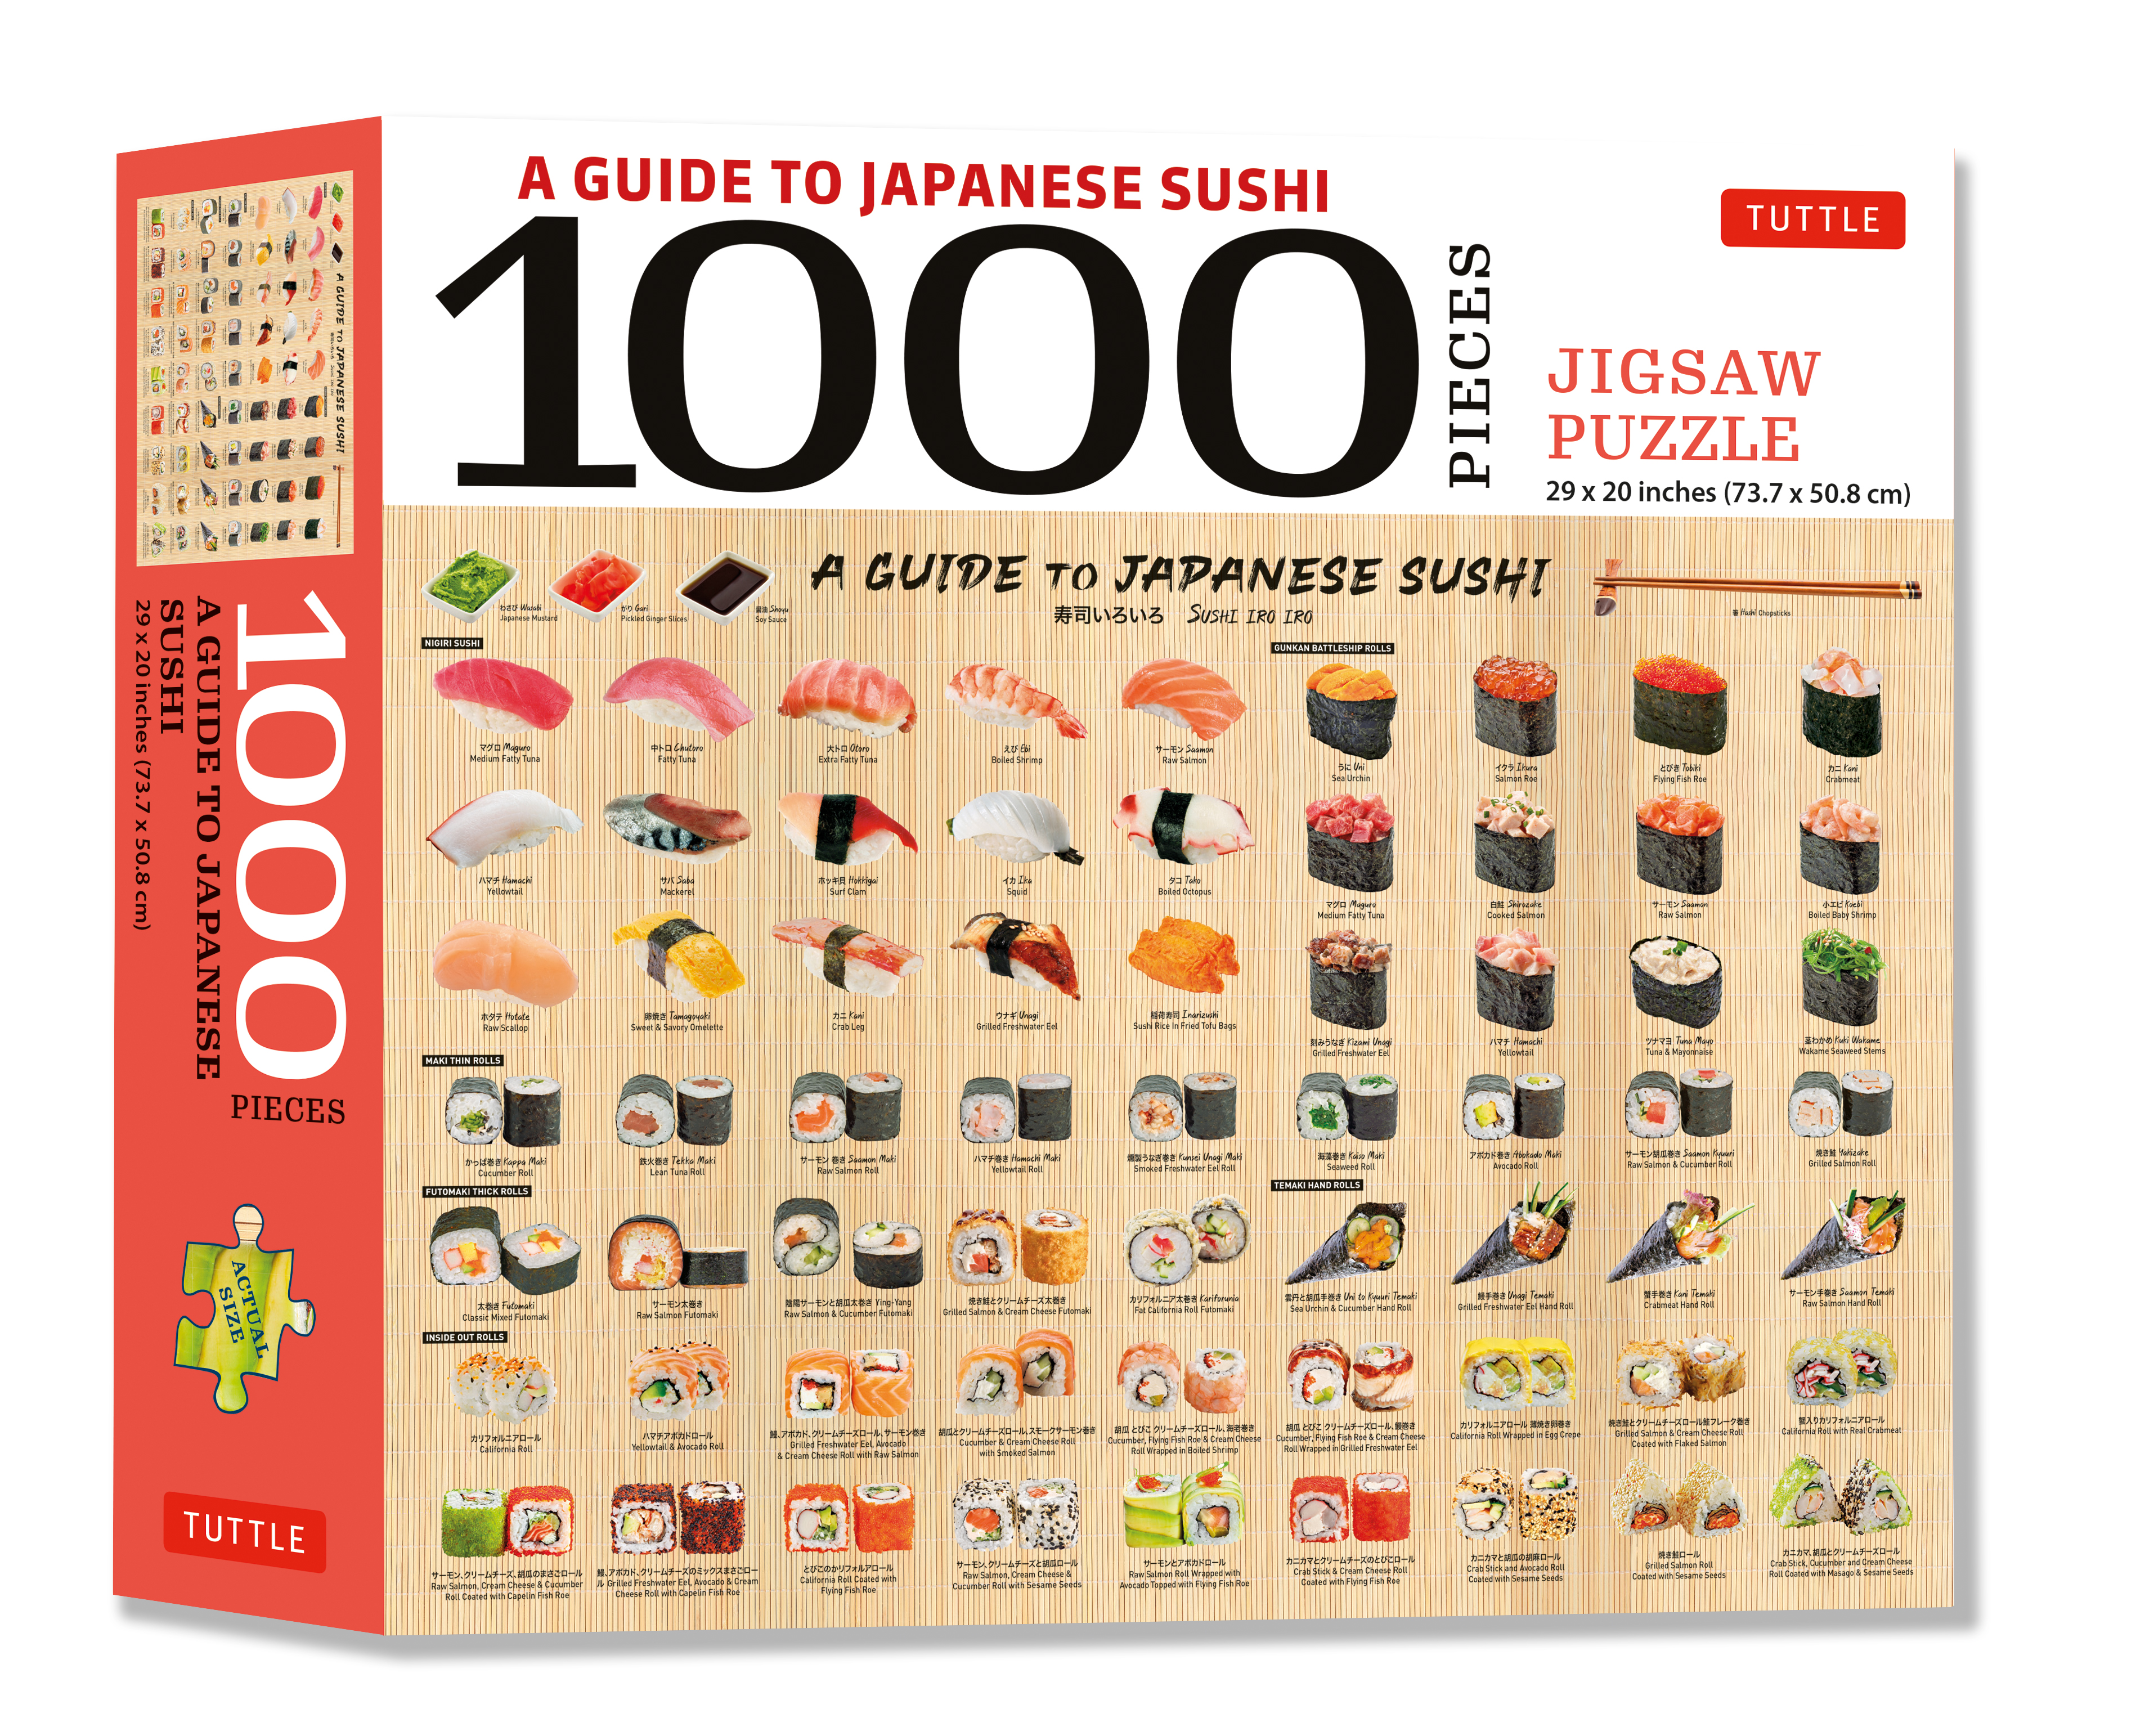 A Guide to Japanese Sushi - 1000 Piece Jigsaw Puzzle